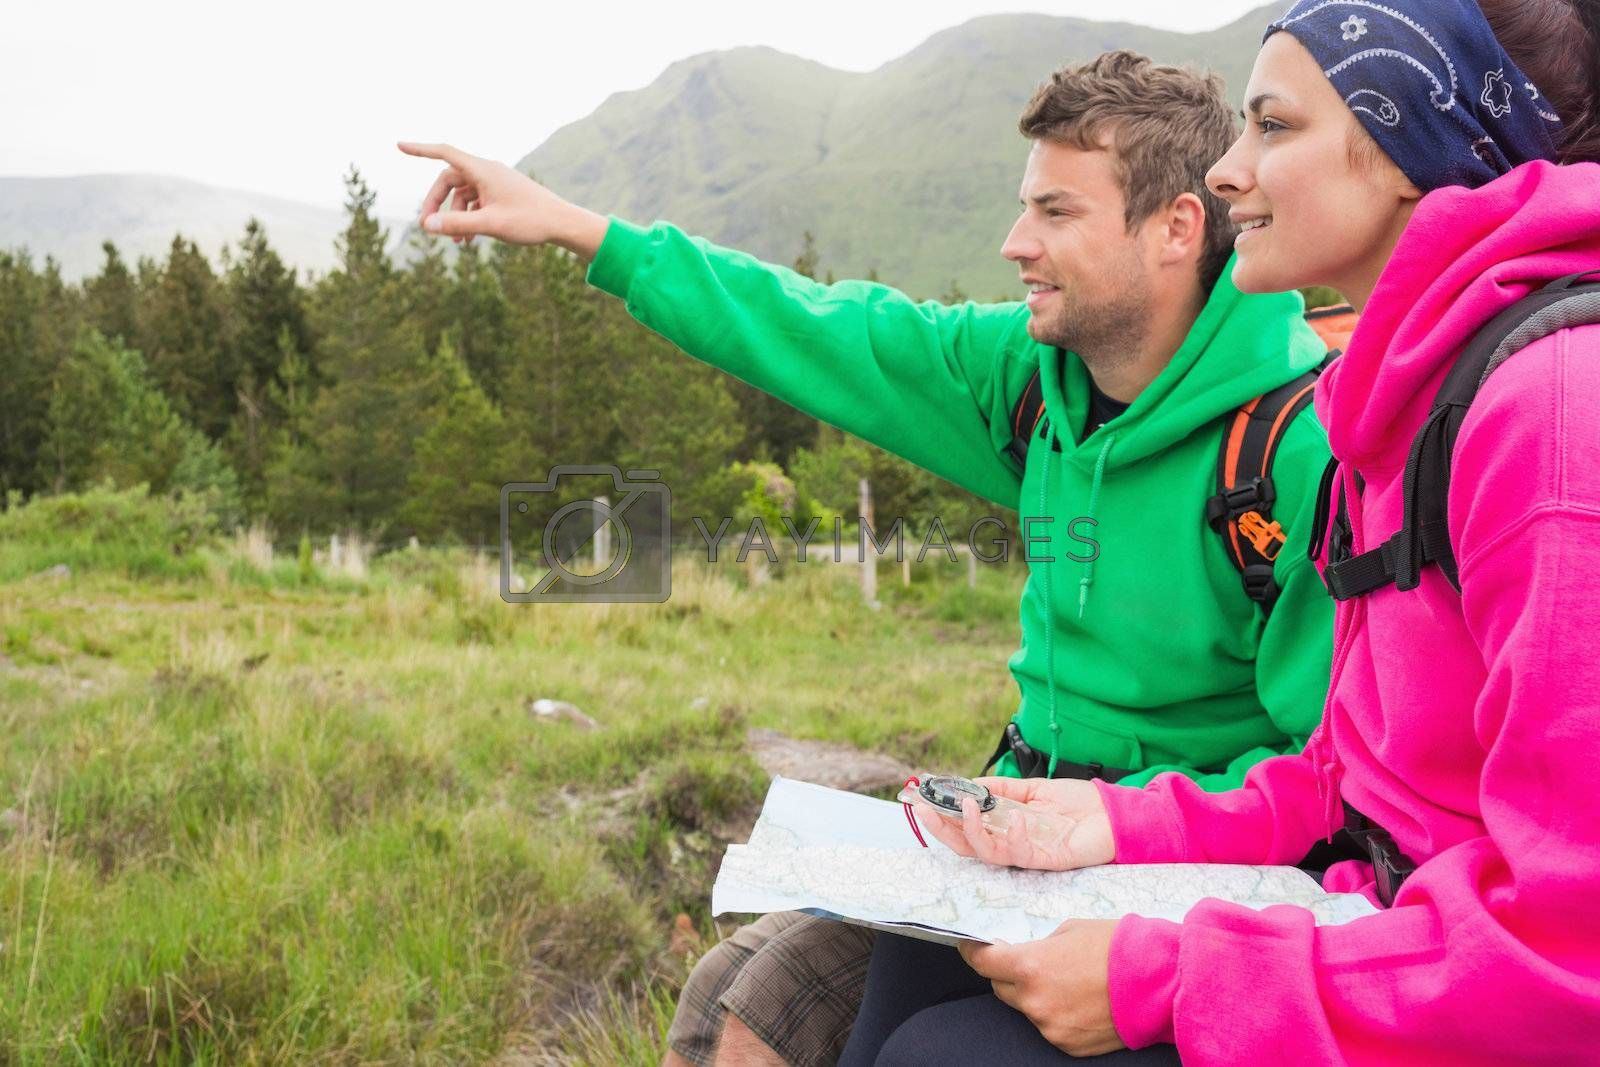 Couple sitting on a rock during hike using map and compass by Wavebreakmedia